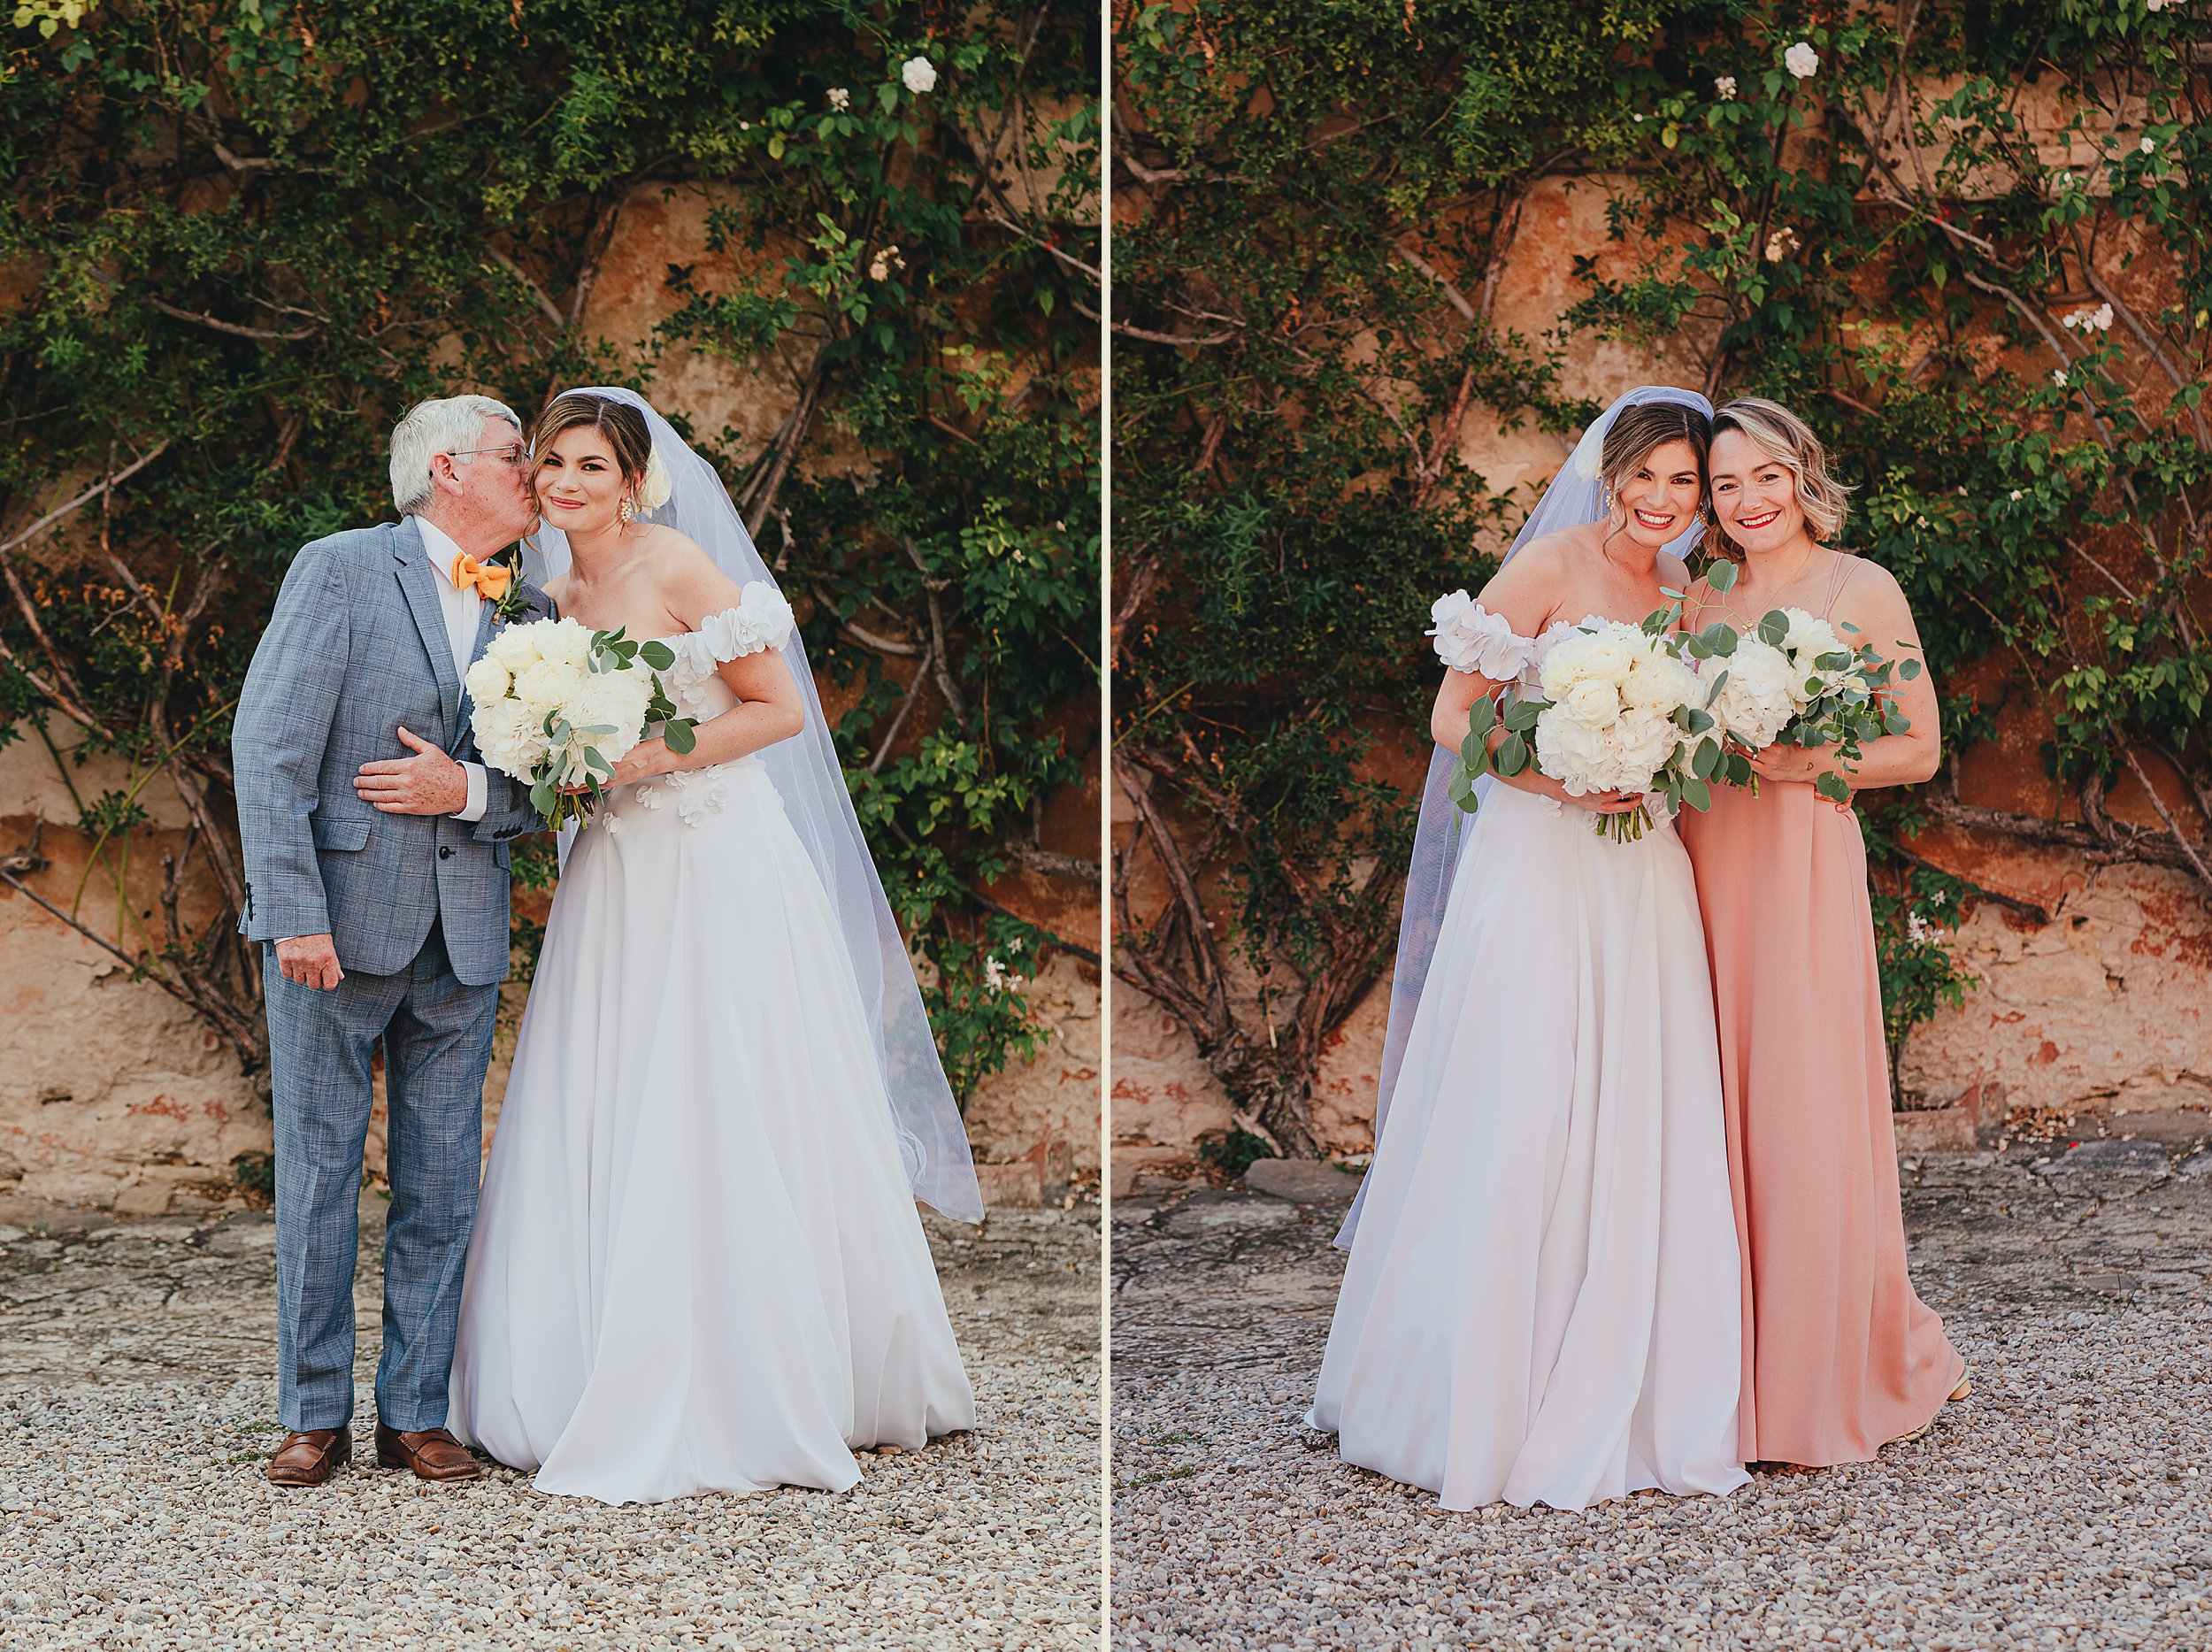 Tuscan Villa Wedding - Portraits of the Bride and her Father and Bridesmaid